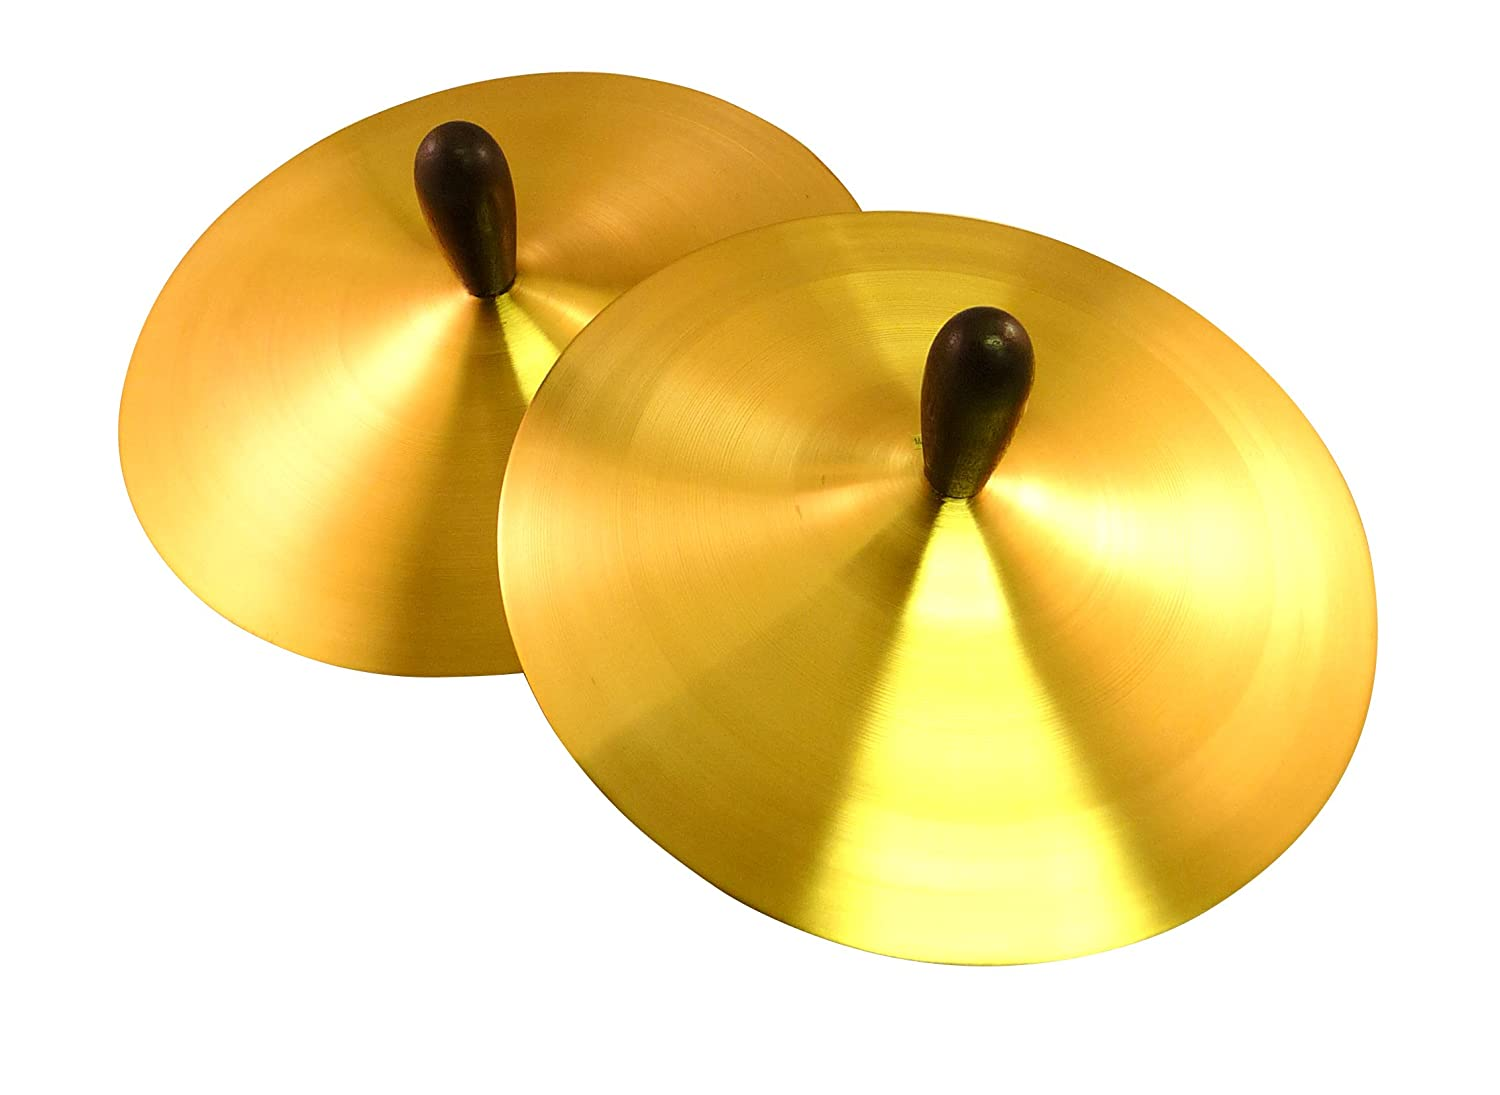 Suzuki Musical Instrument Corporation CY-2 8-Inch Crash Cymbals, 1 Pair